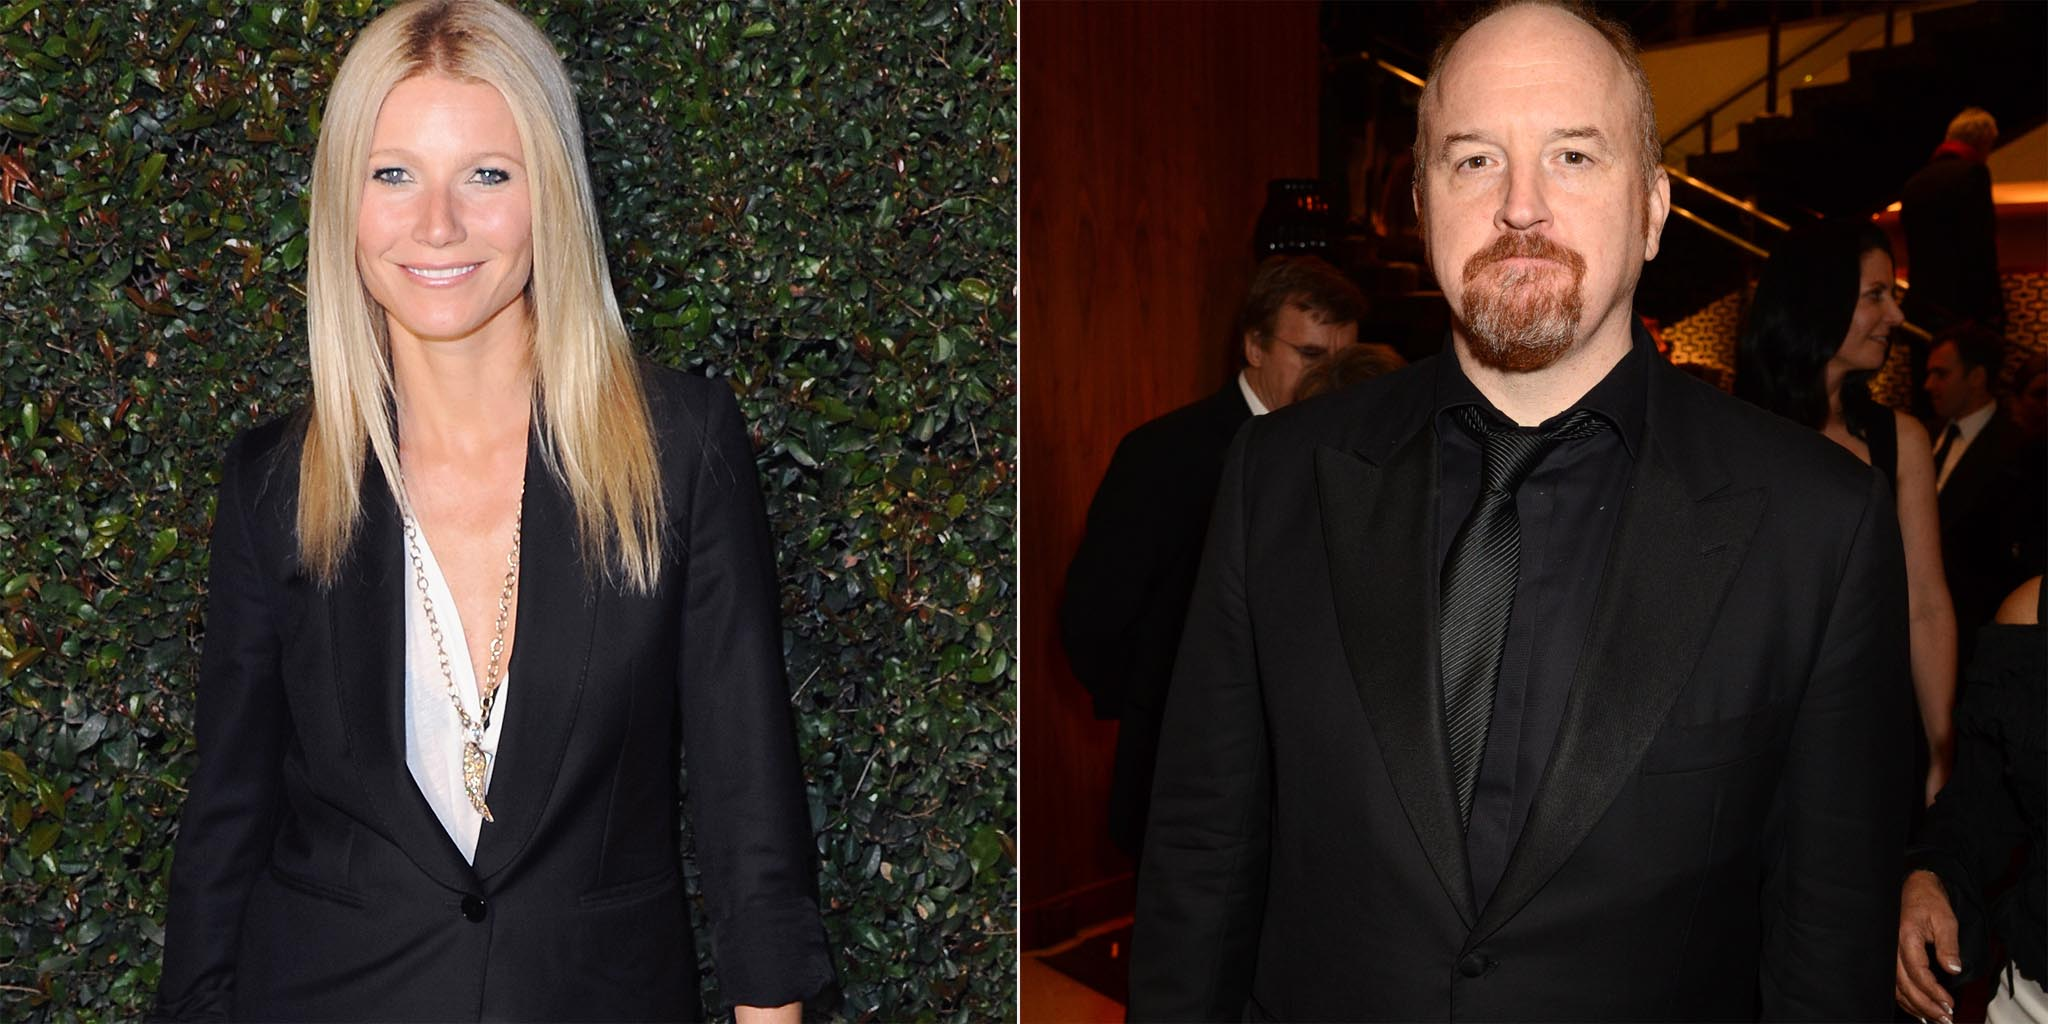 Gwyneth Paltrow and Louis C.K. (FilmMagic/Getty Images)